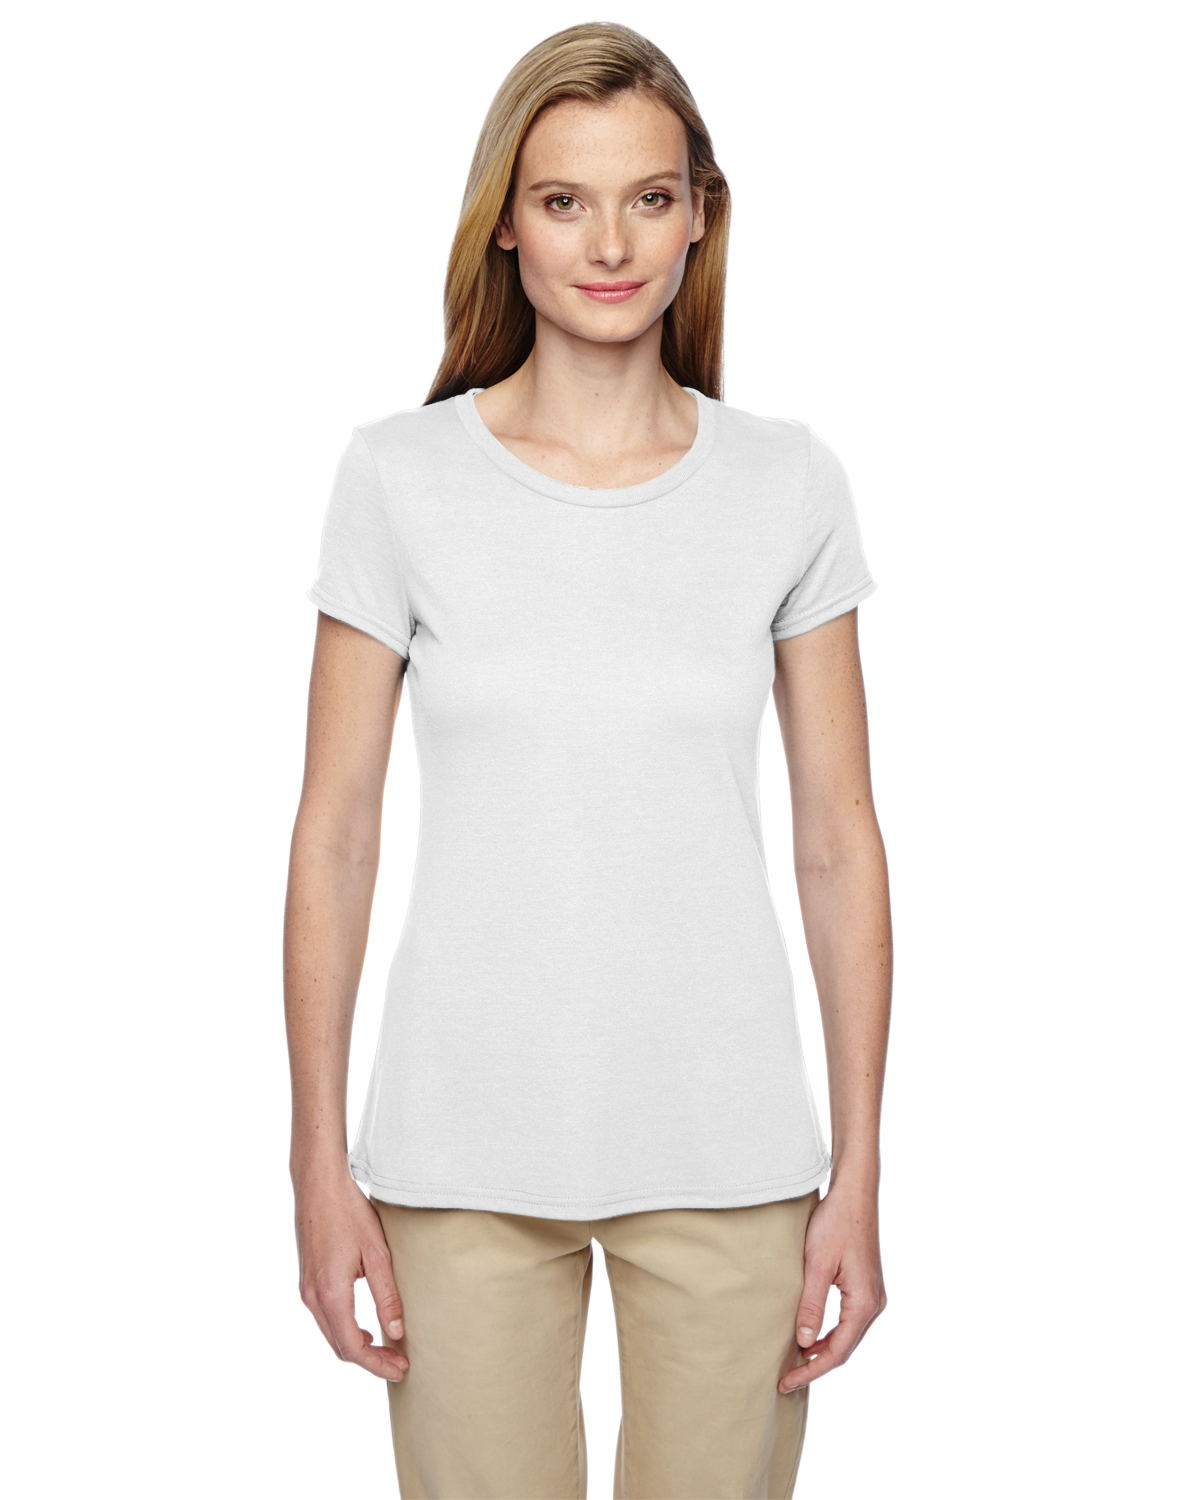 Hanes 21WR - Ladies' 5.3 oz.100% Polyester SPORT T-Shirt